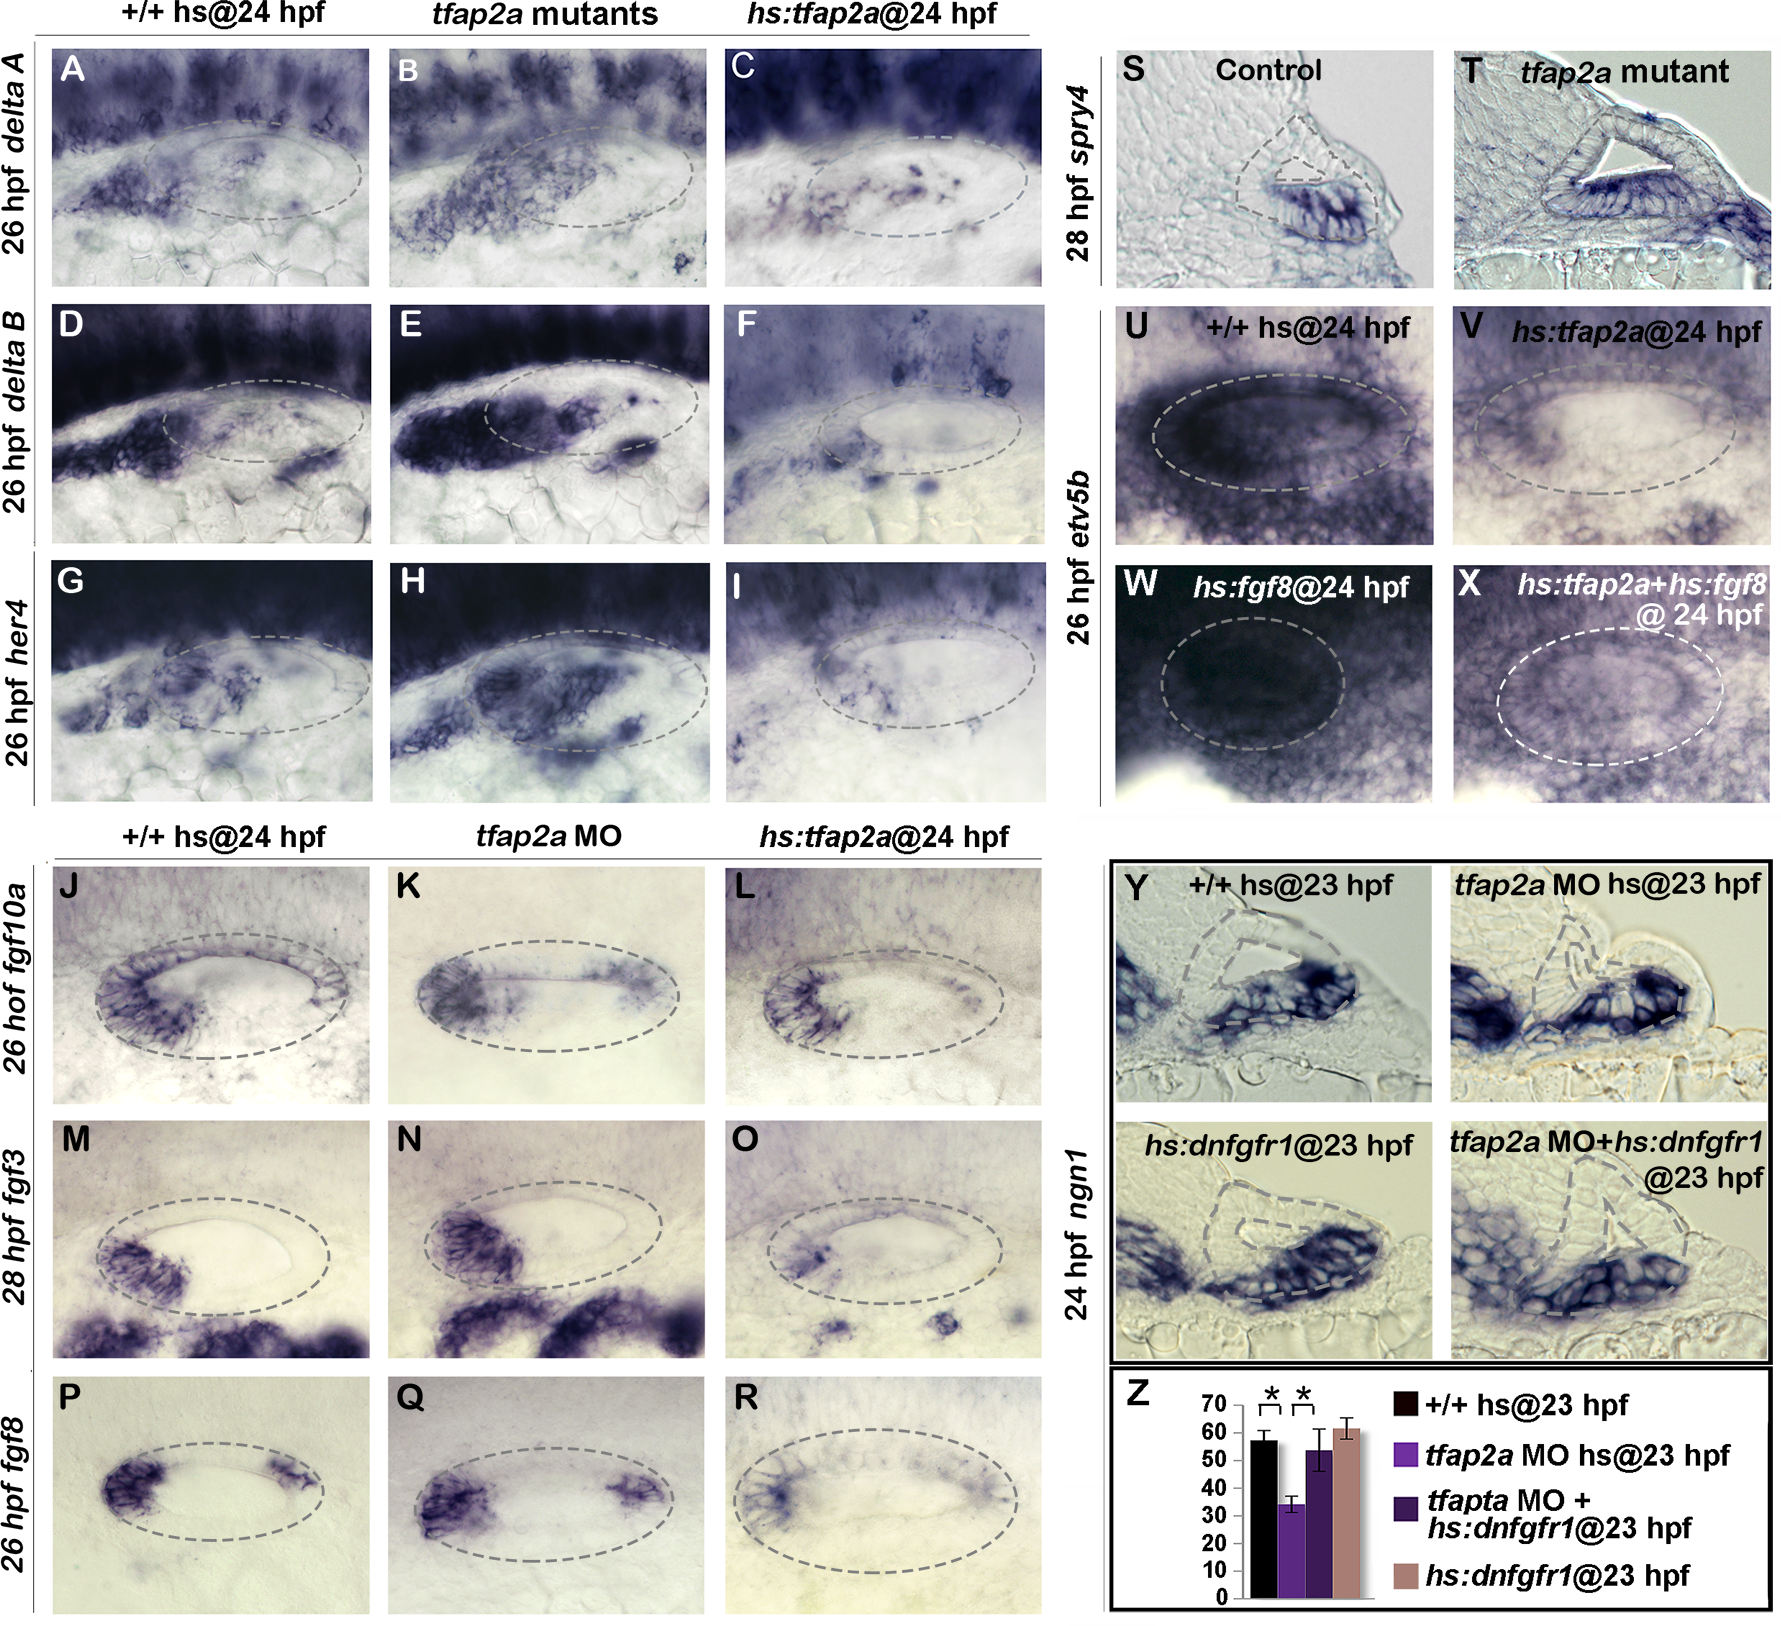 Tfap2a regulates the level of Fgf and Notch Signaling in the otic vesicle.